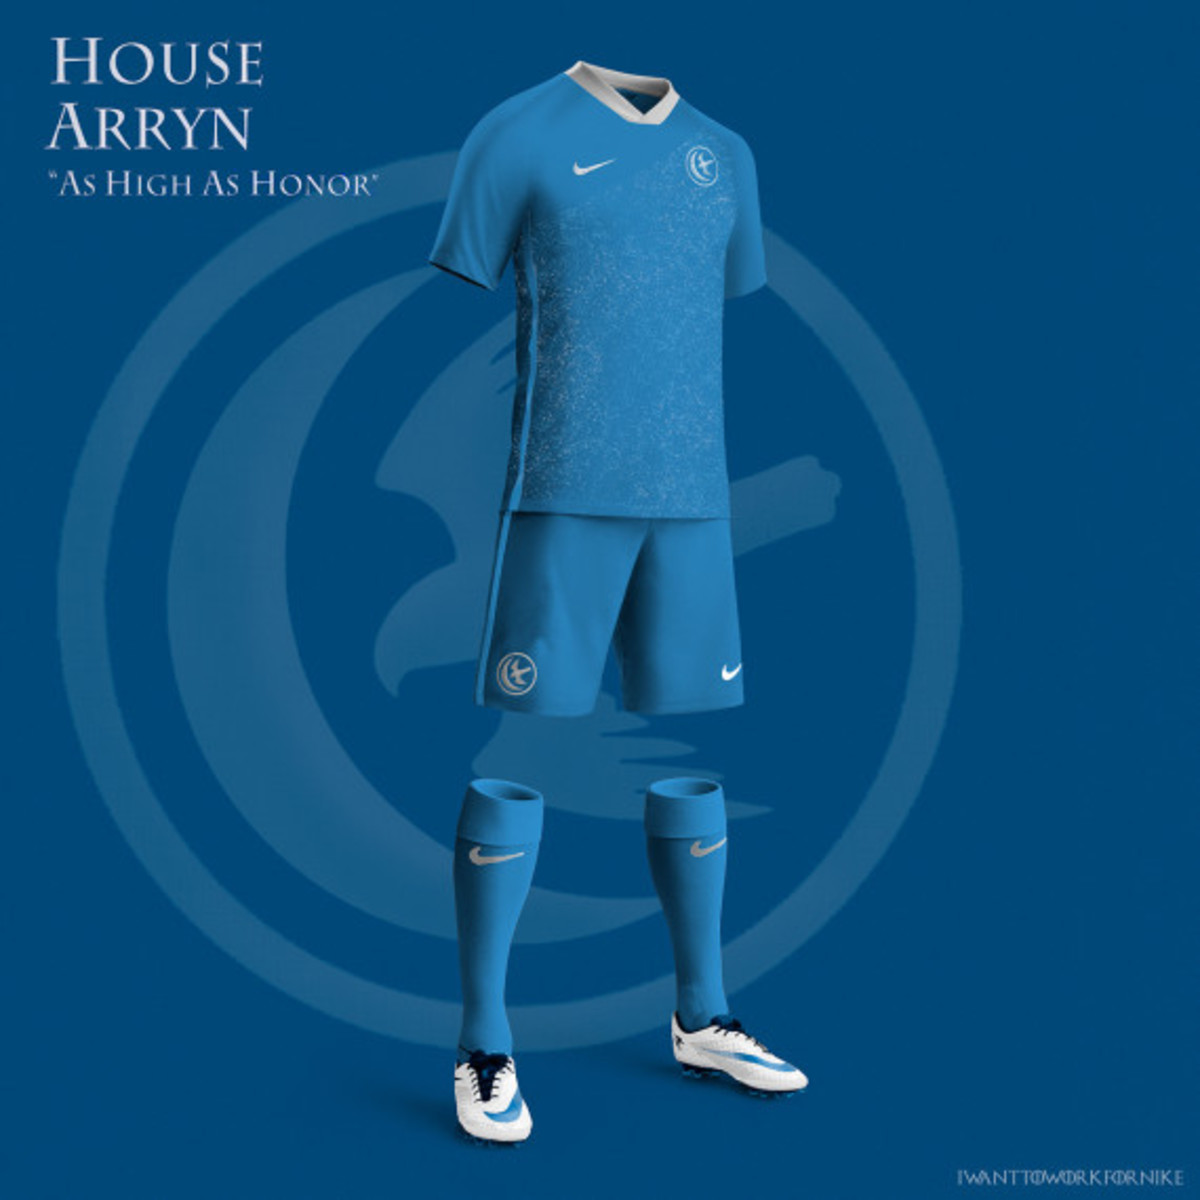 Game of Thrones-inspired Nike Soccer Kit Concepts by Nerea Palacios - 5